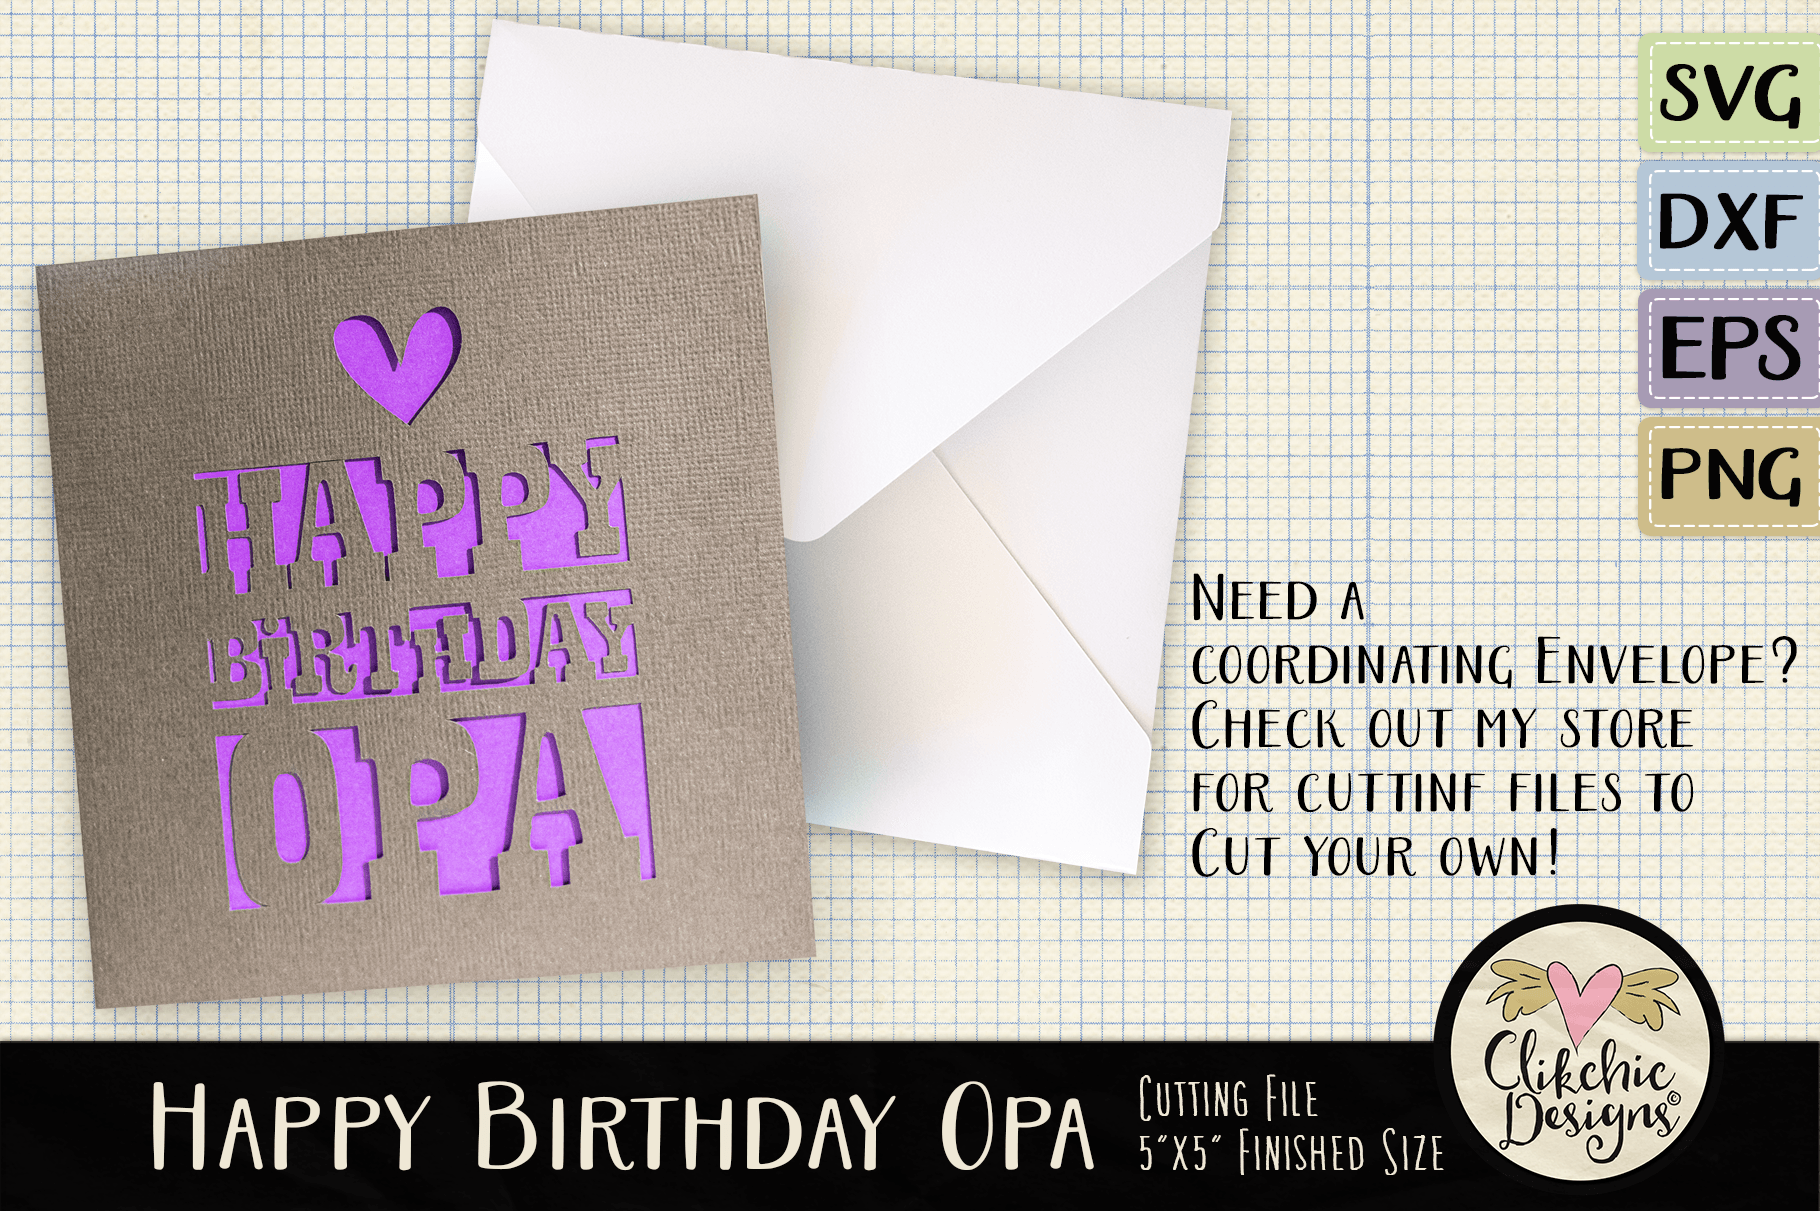 File Check Out Card happy birthday opa card svg cutting fileclikchic designs